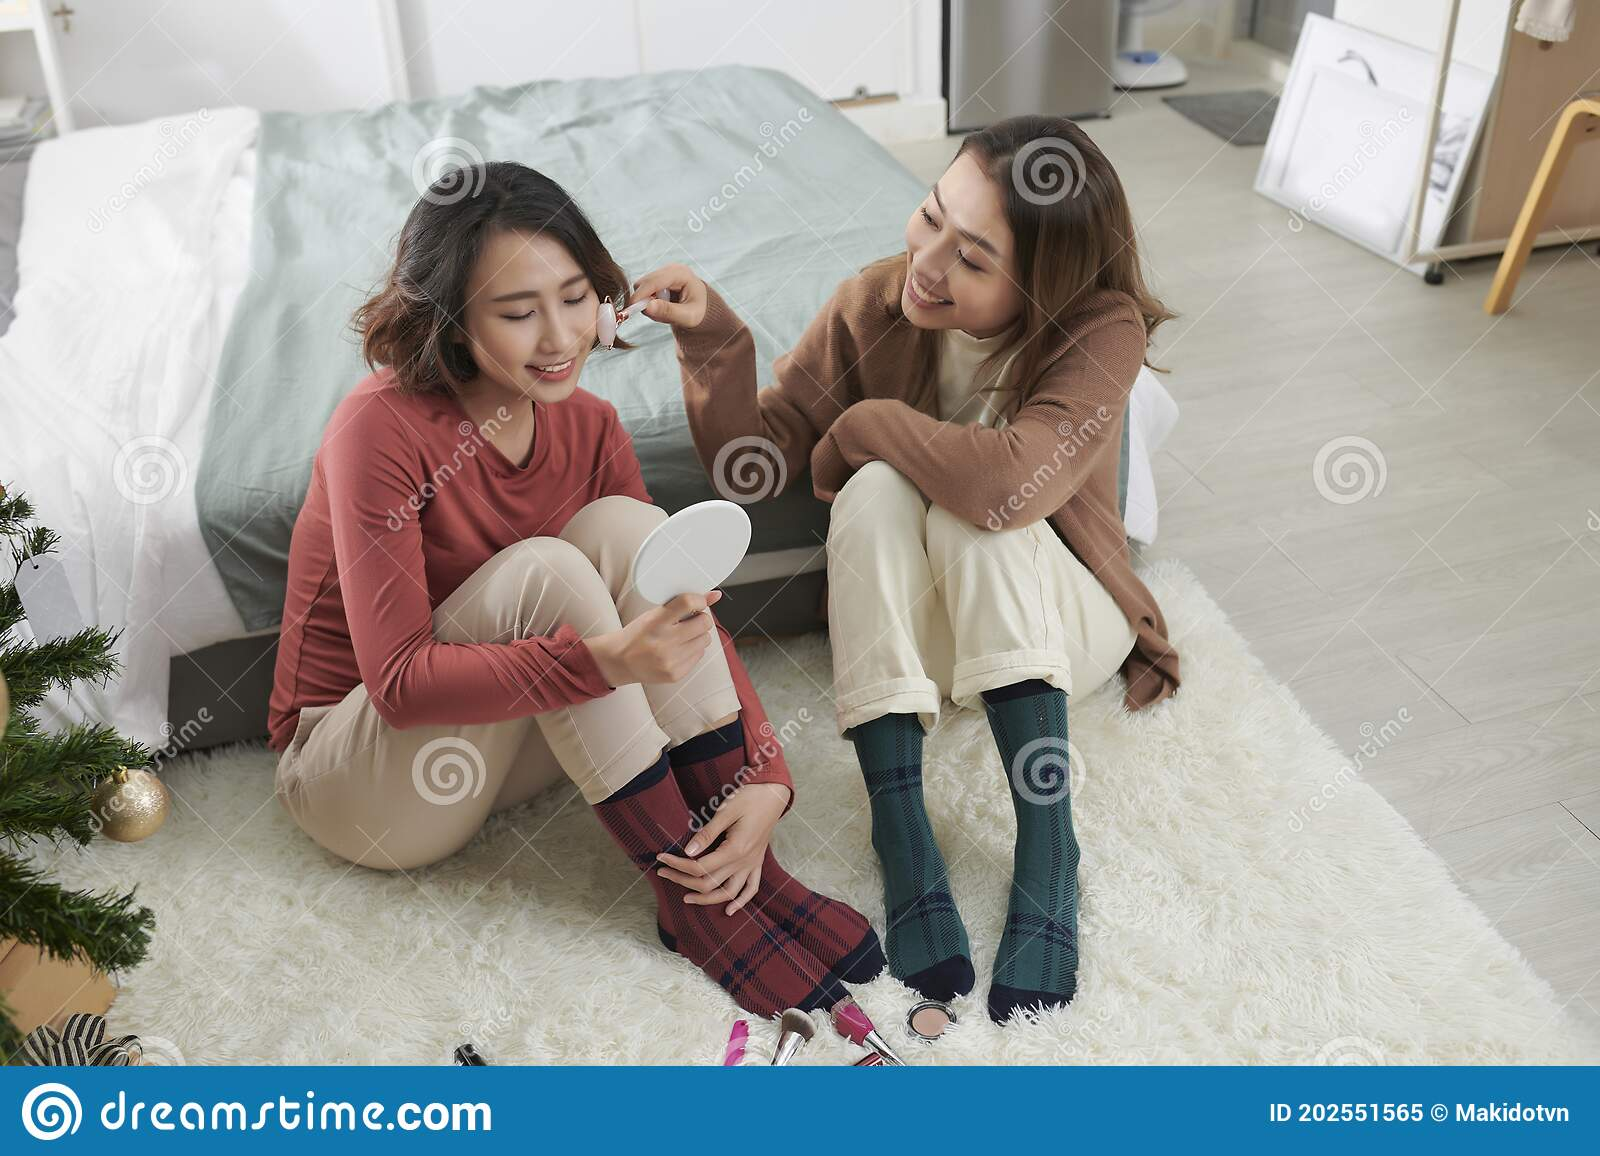 Two Girls Facial Treatment Together With Massage Device